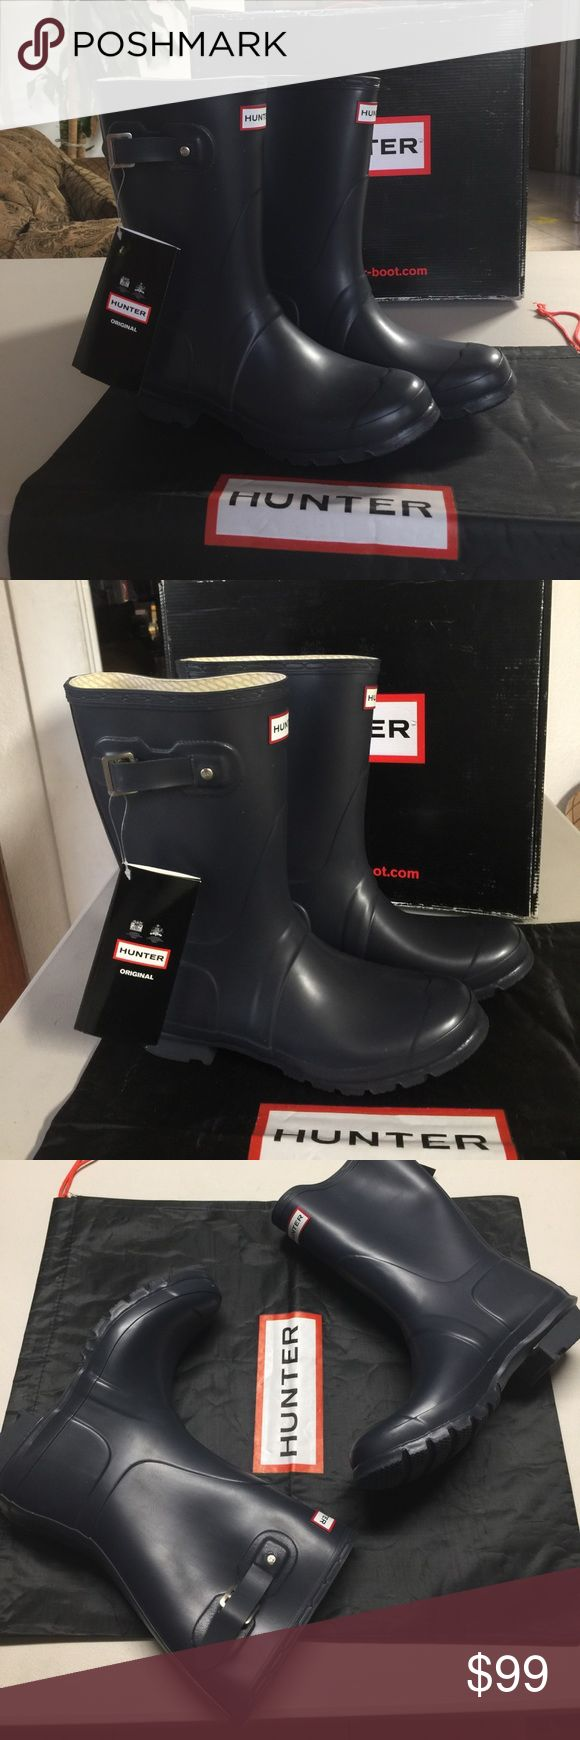 Hunter short matte navy blue will fit size 10 too New! Authentic.Don't buy used boots! Pay the same or less for a pair of Brand New HUNTER boots that you can easily re-sell & get your 💰 back. Comes with box, a little beat up from transportation. These are an amazing fashion statement. Great for rainy days, cloudy days, beach, snow,the woods a trip to the river or just doing yard work ... the possibilities are endless. Bundle and save! Limited supply. Read the about me for reviews, Priced to…